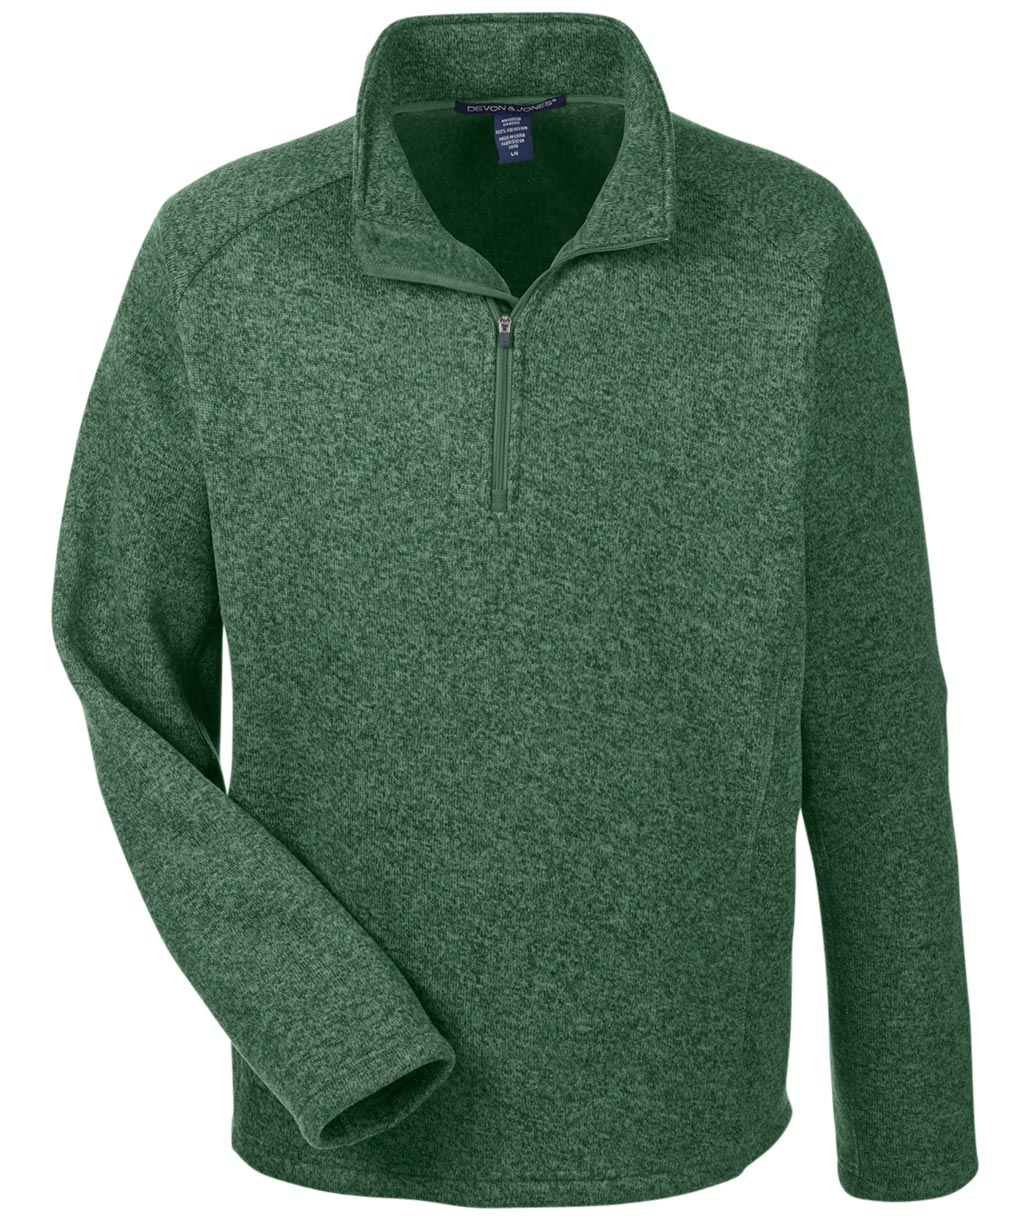 Mens Bristol Quarter-Zip Sweater Fleece